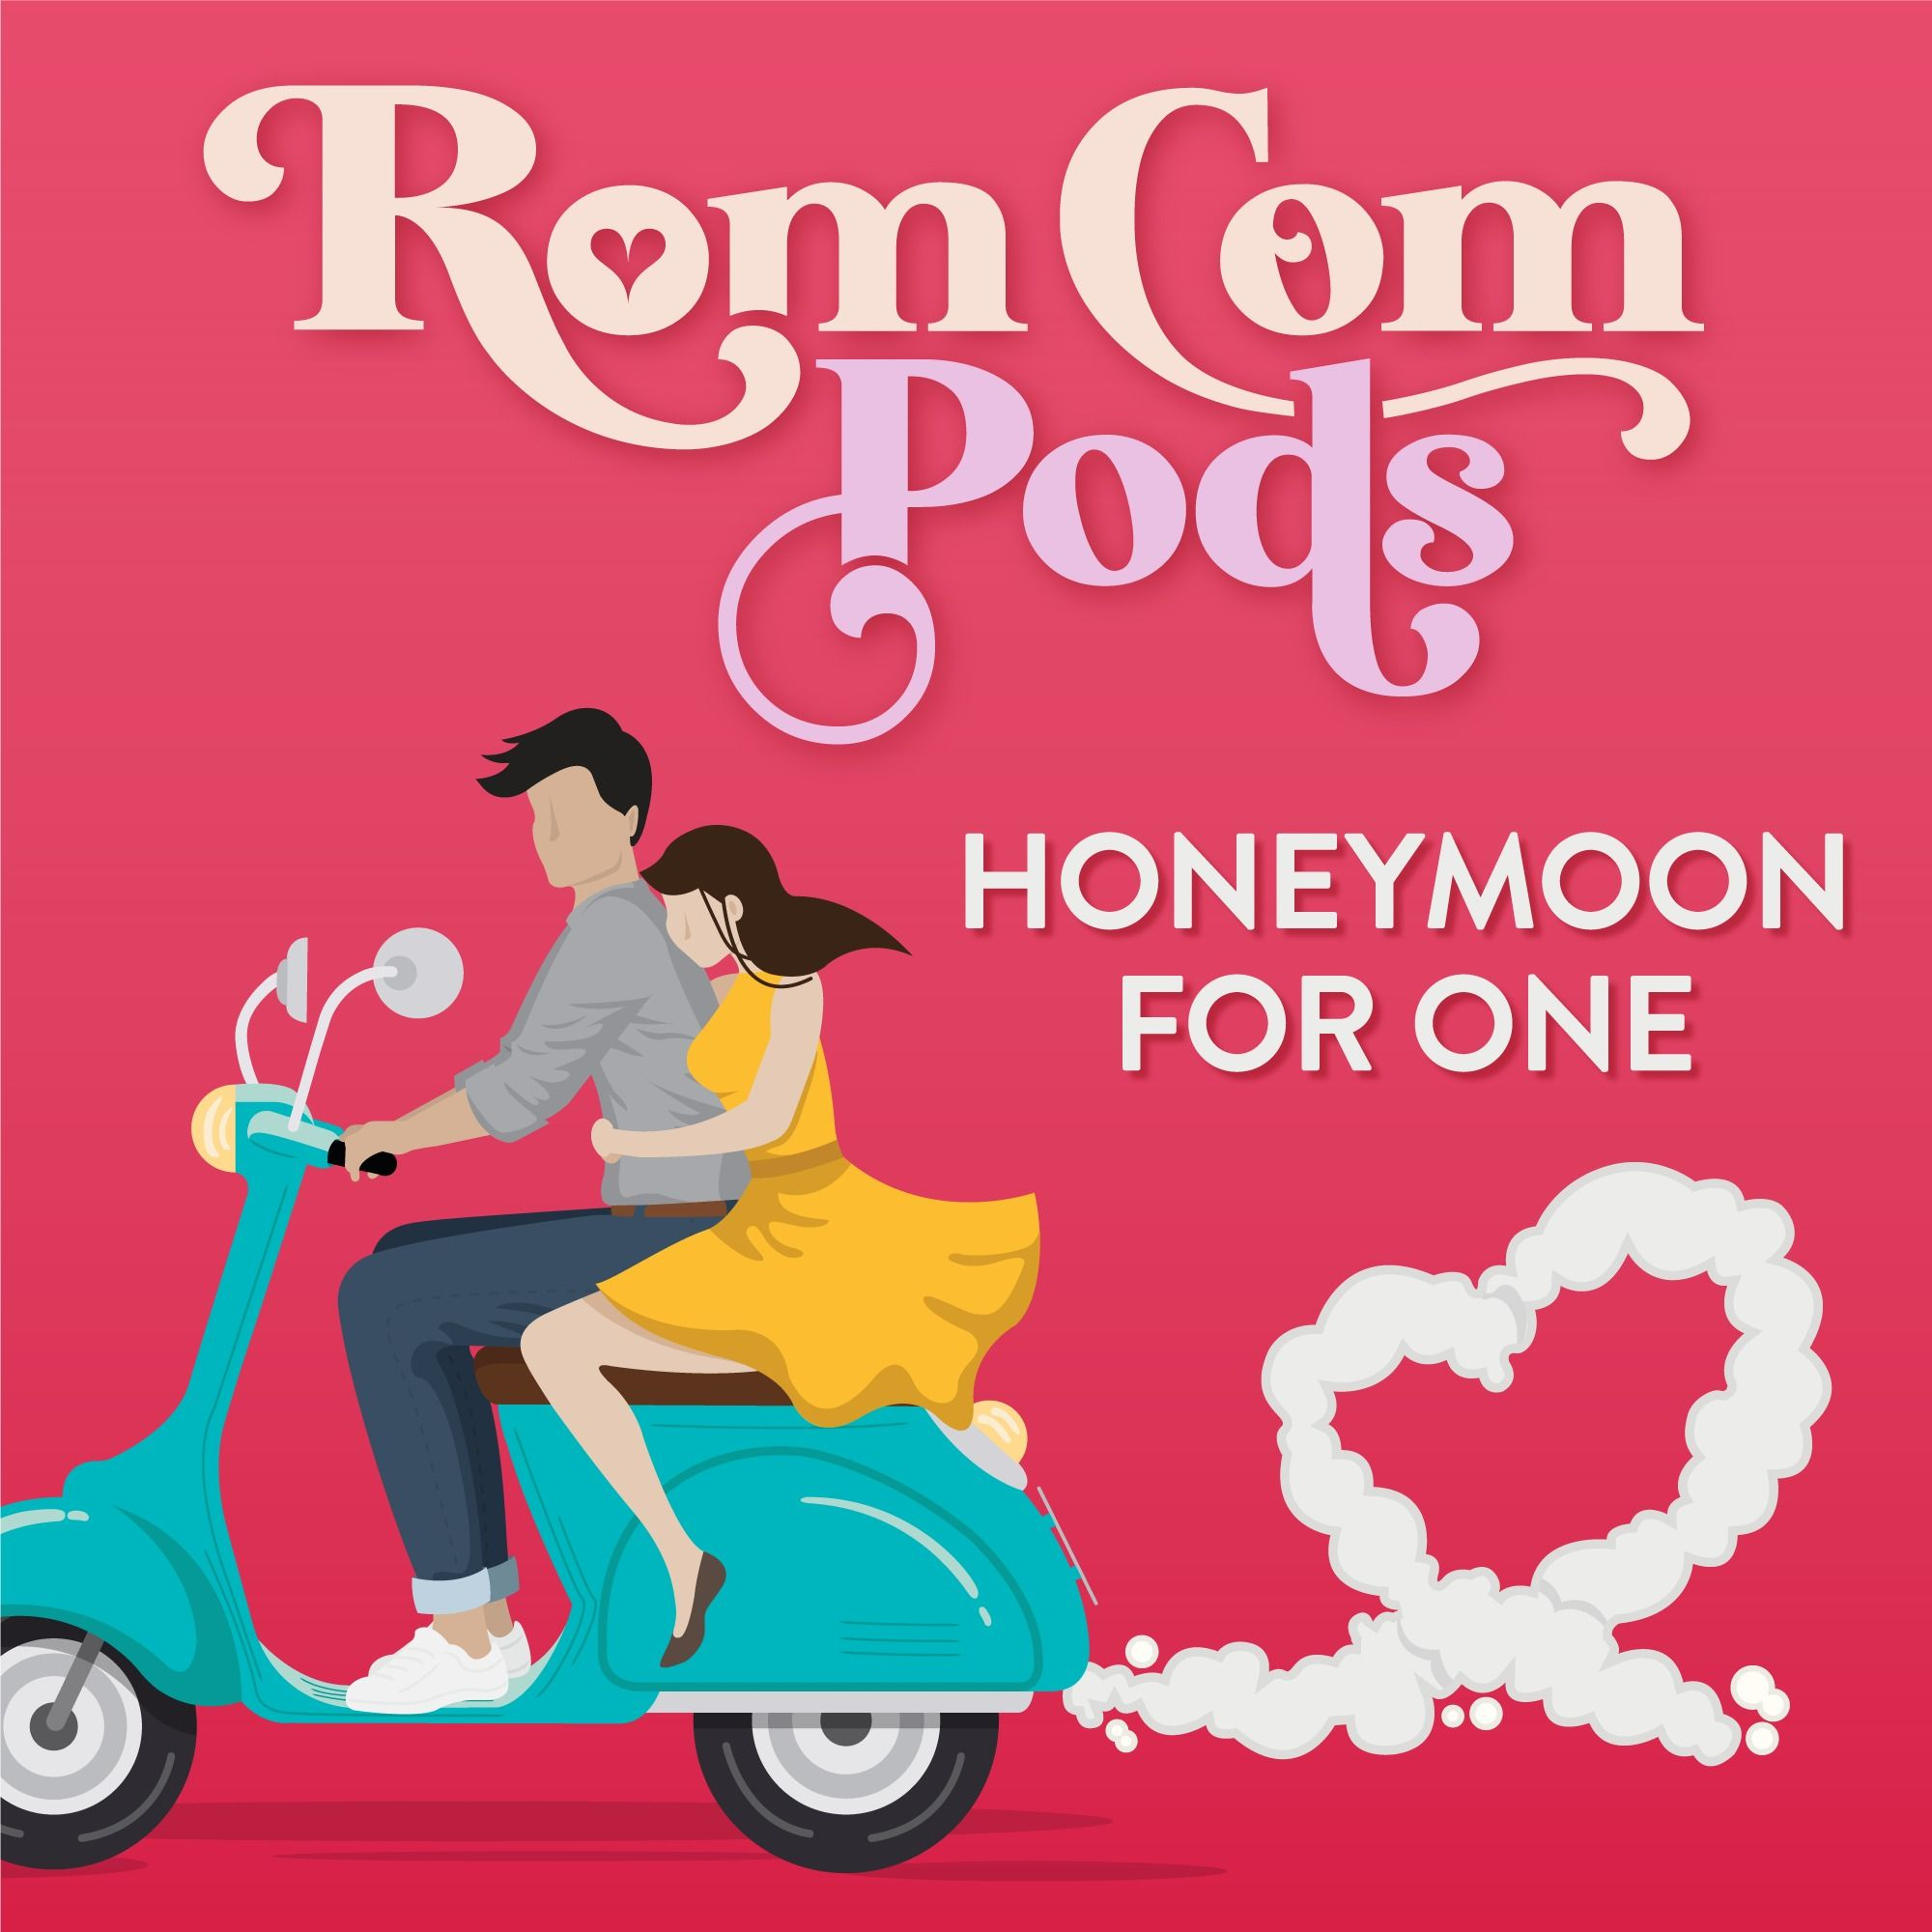 Honeymoon for One: Whatever You Do... Hang on Tight! (Ep 3)